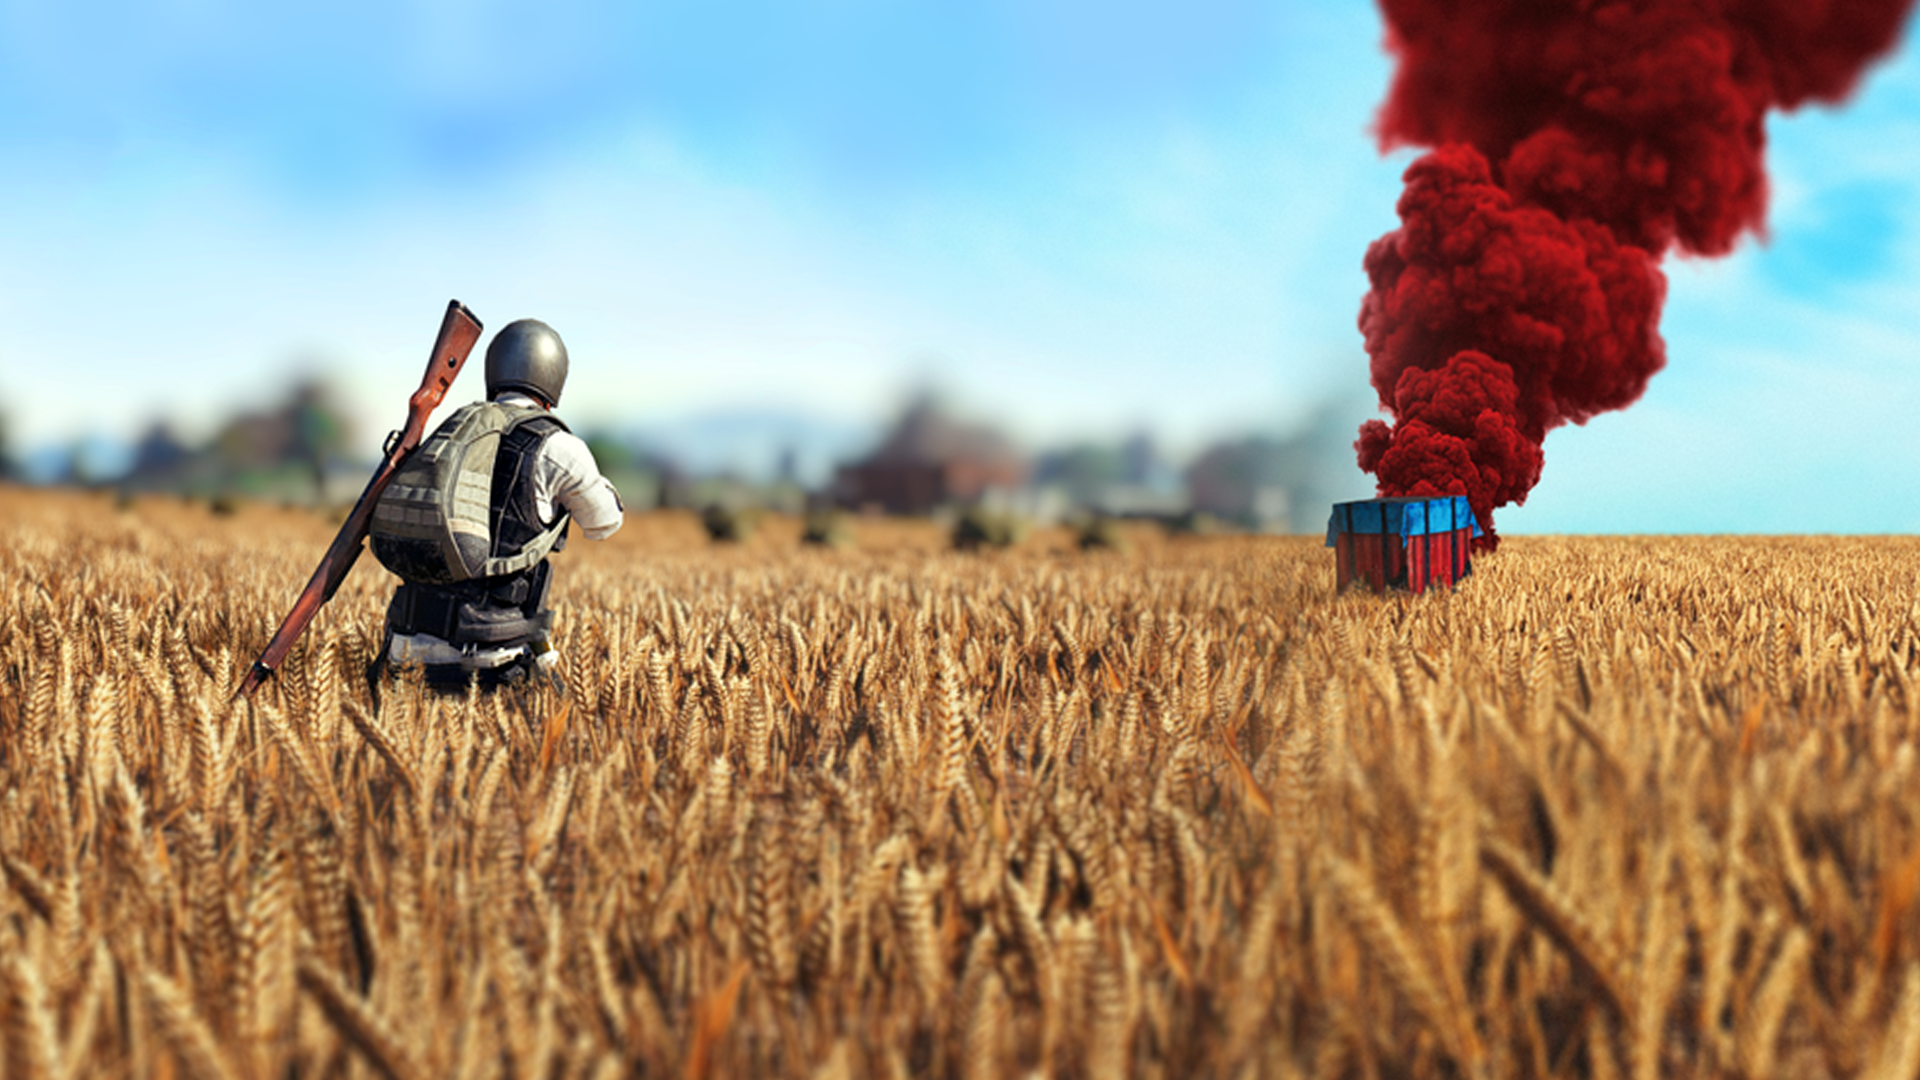 Pubg Wallpaper In Hd: Pubg HD Wallpaper